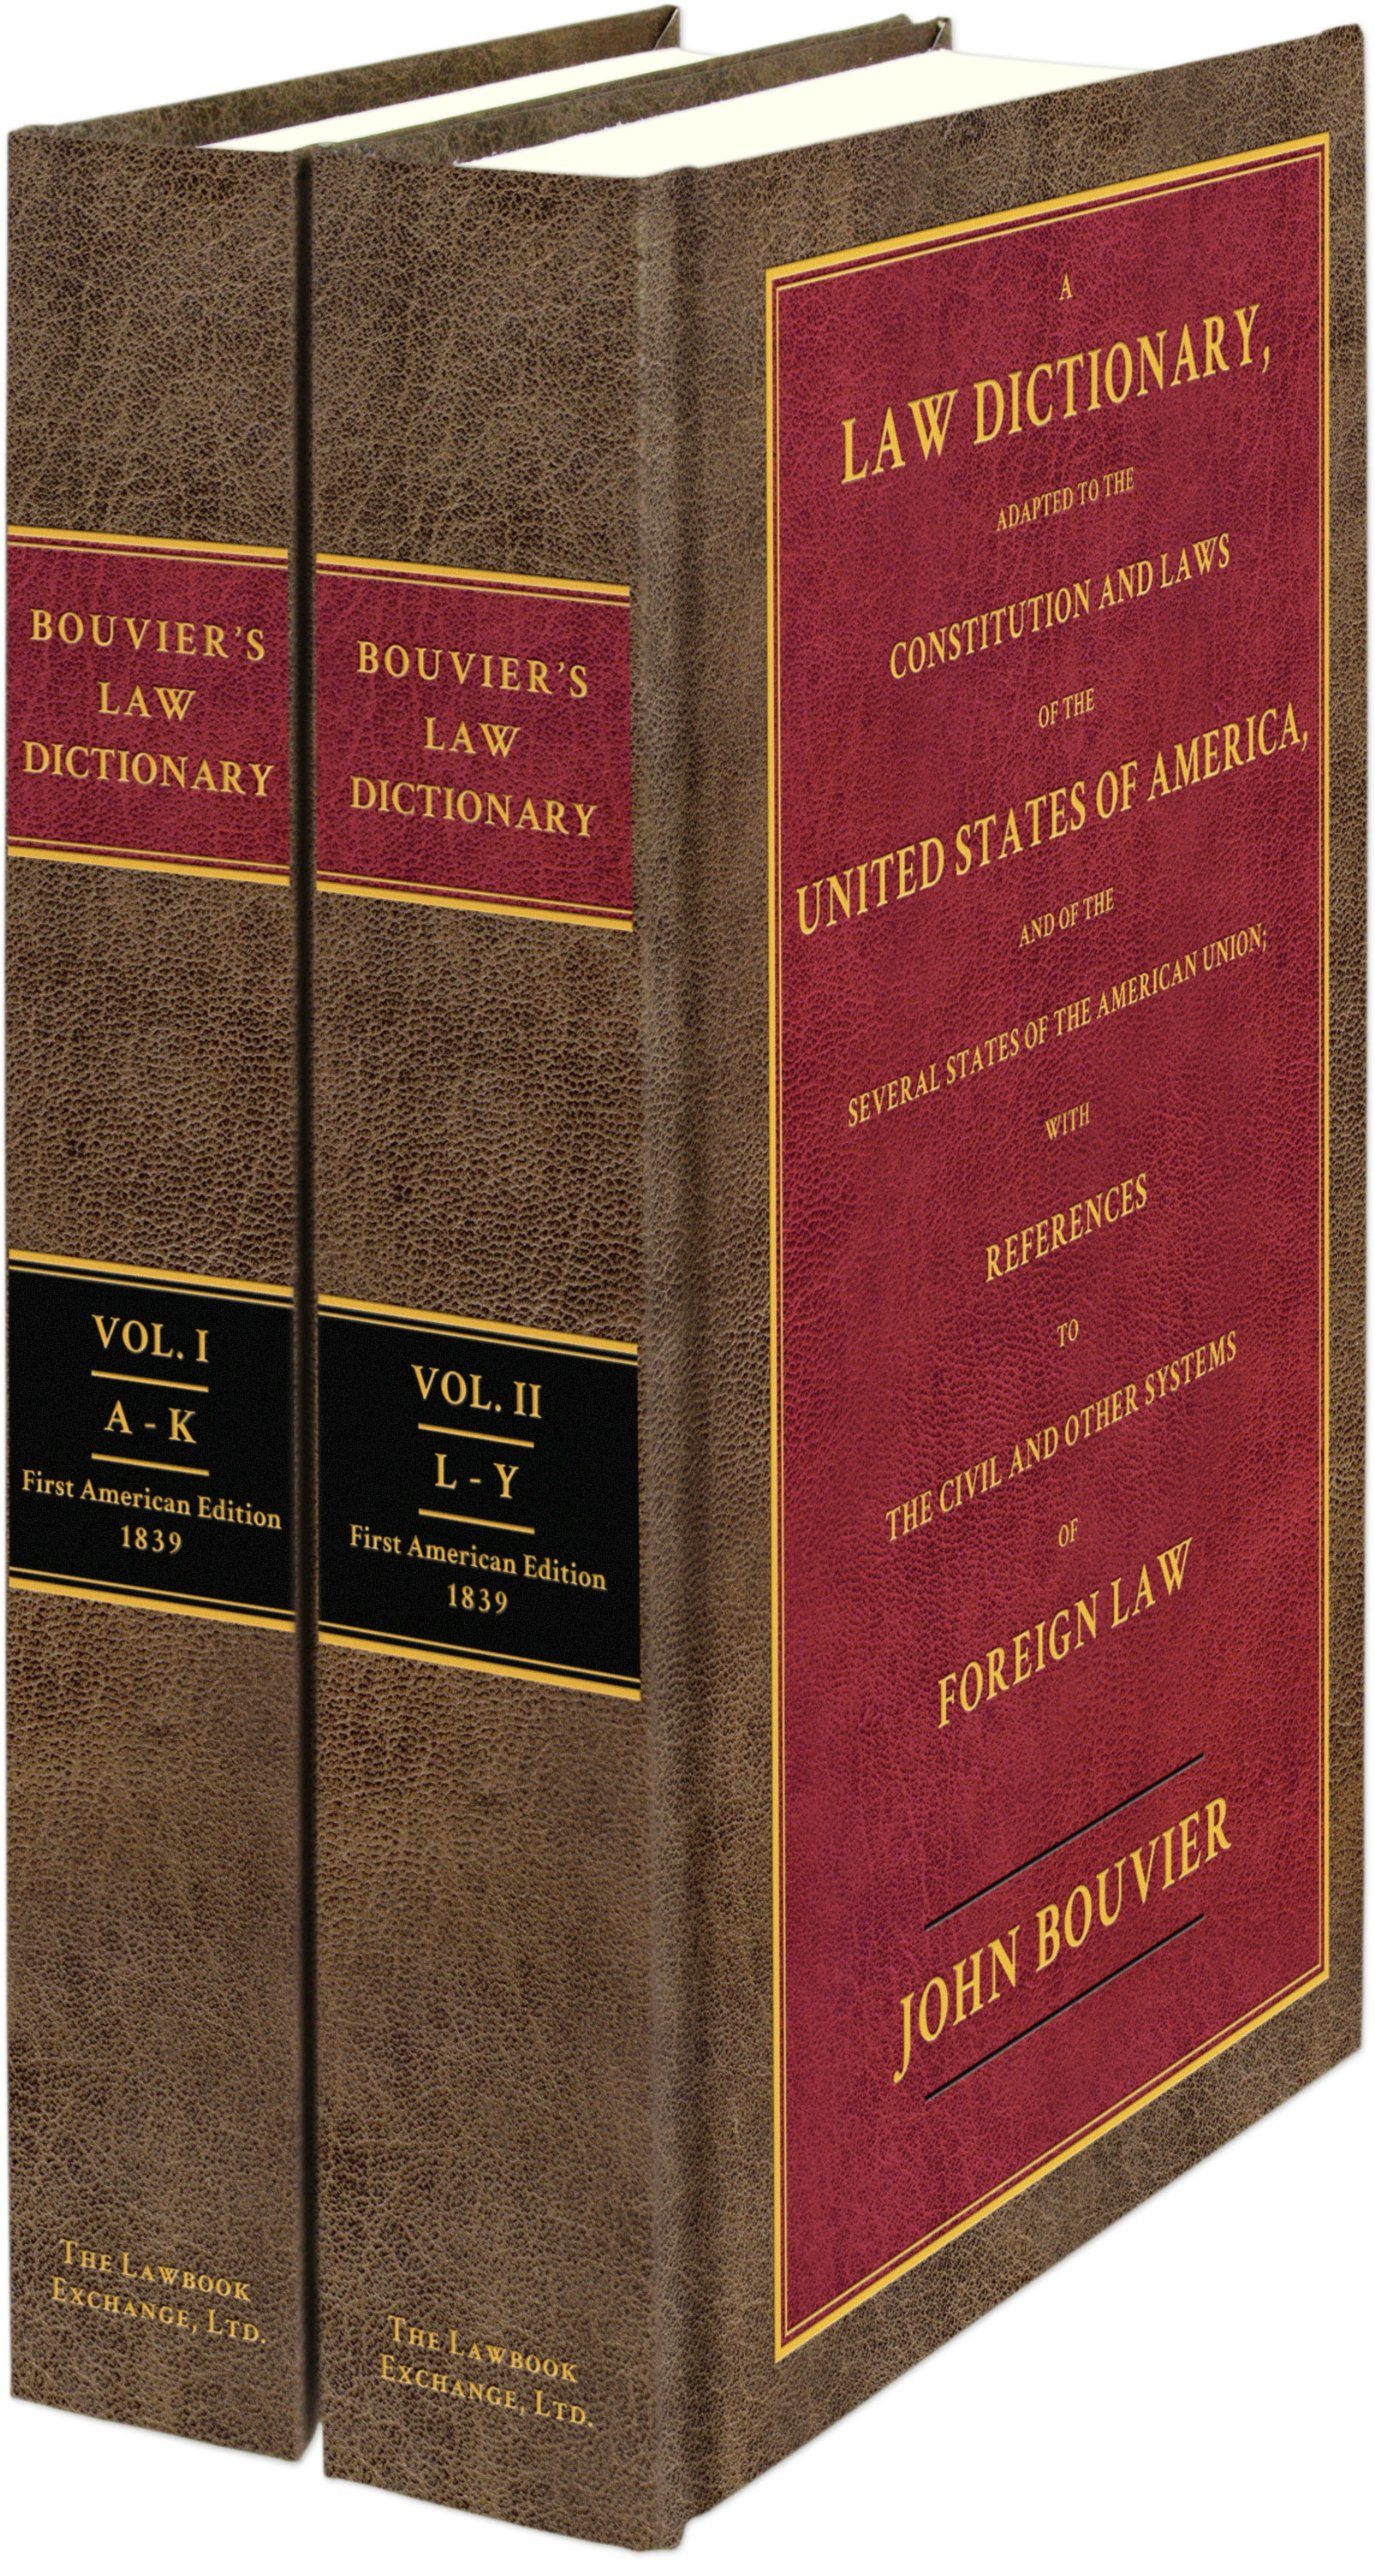 A Law Dictionary: Adapted to the Constitution and Laws of the United States and the Serveral States of the American Union 2 volume set